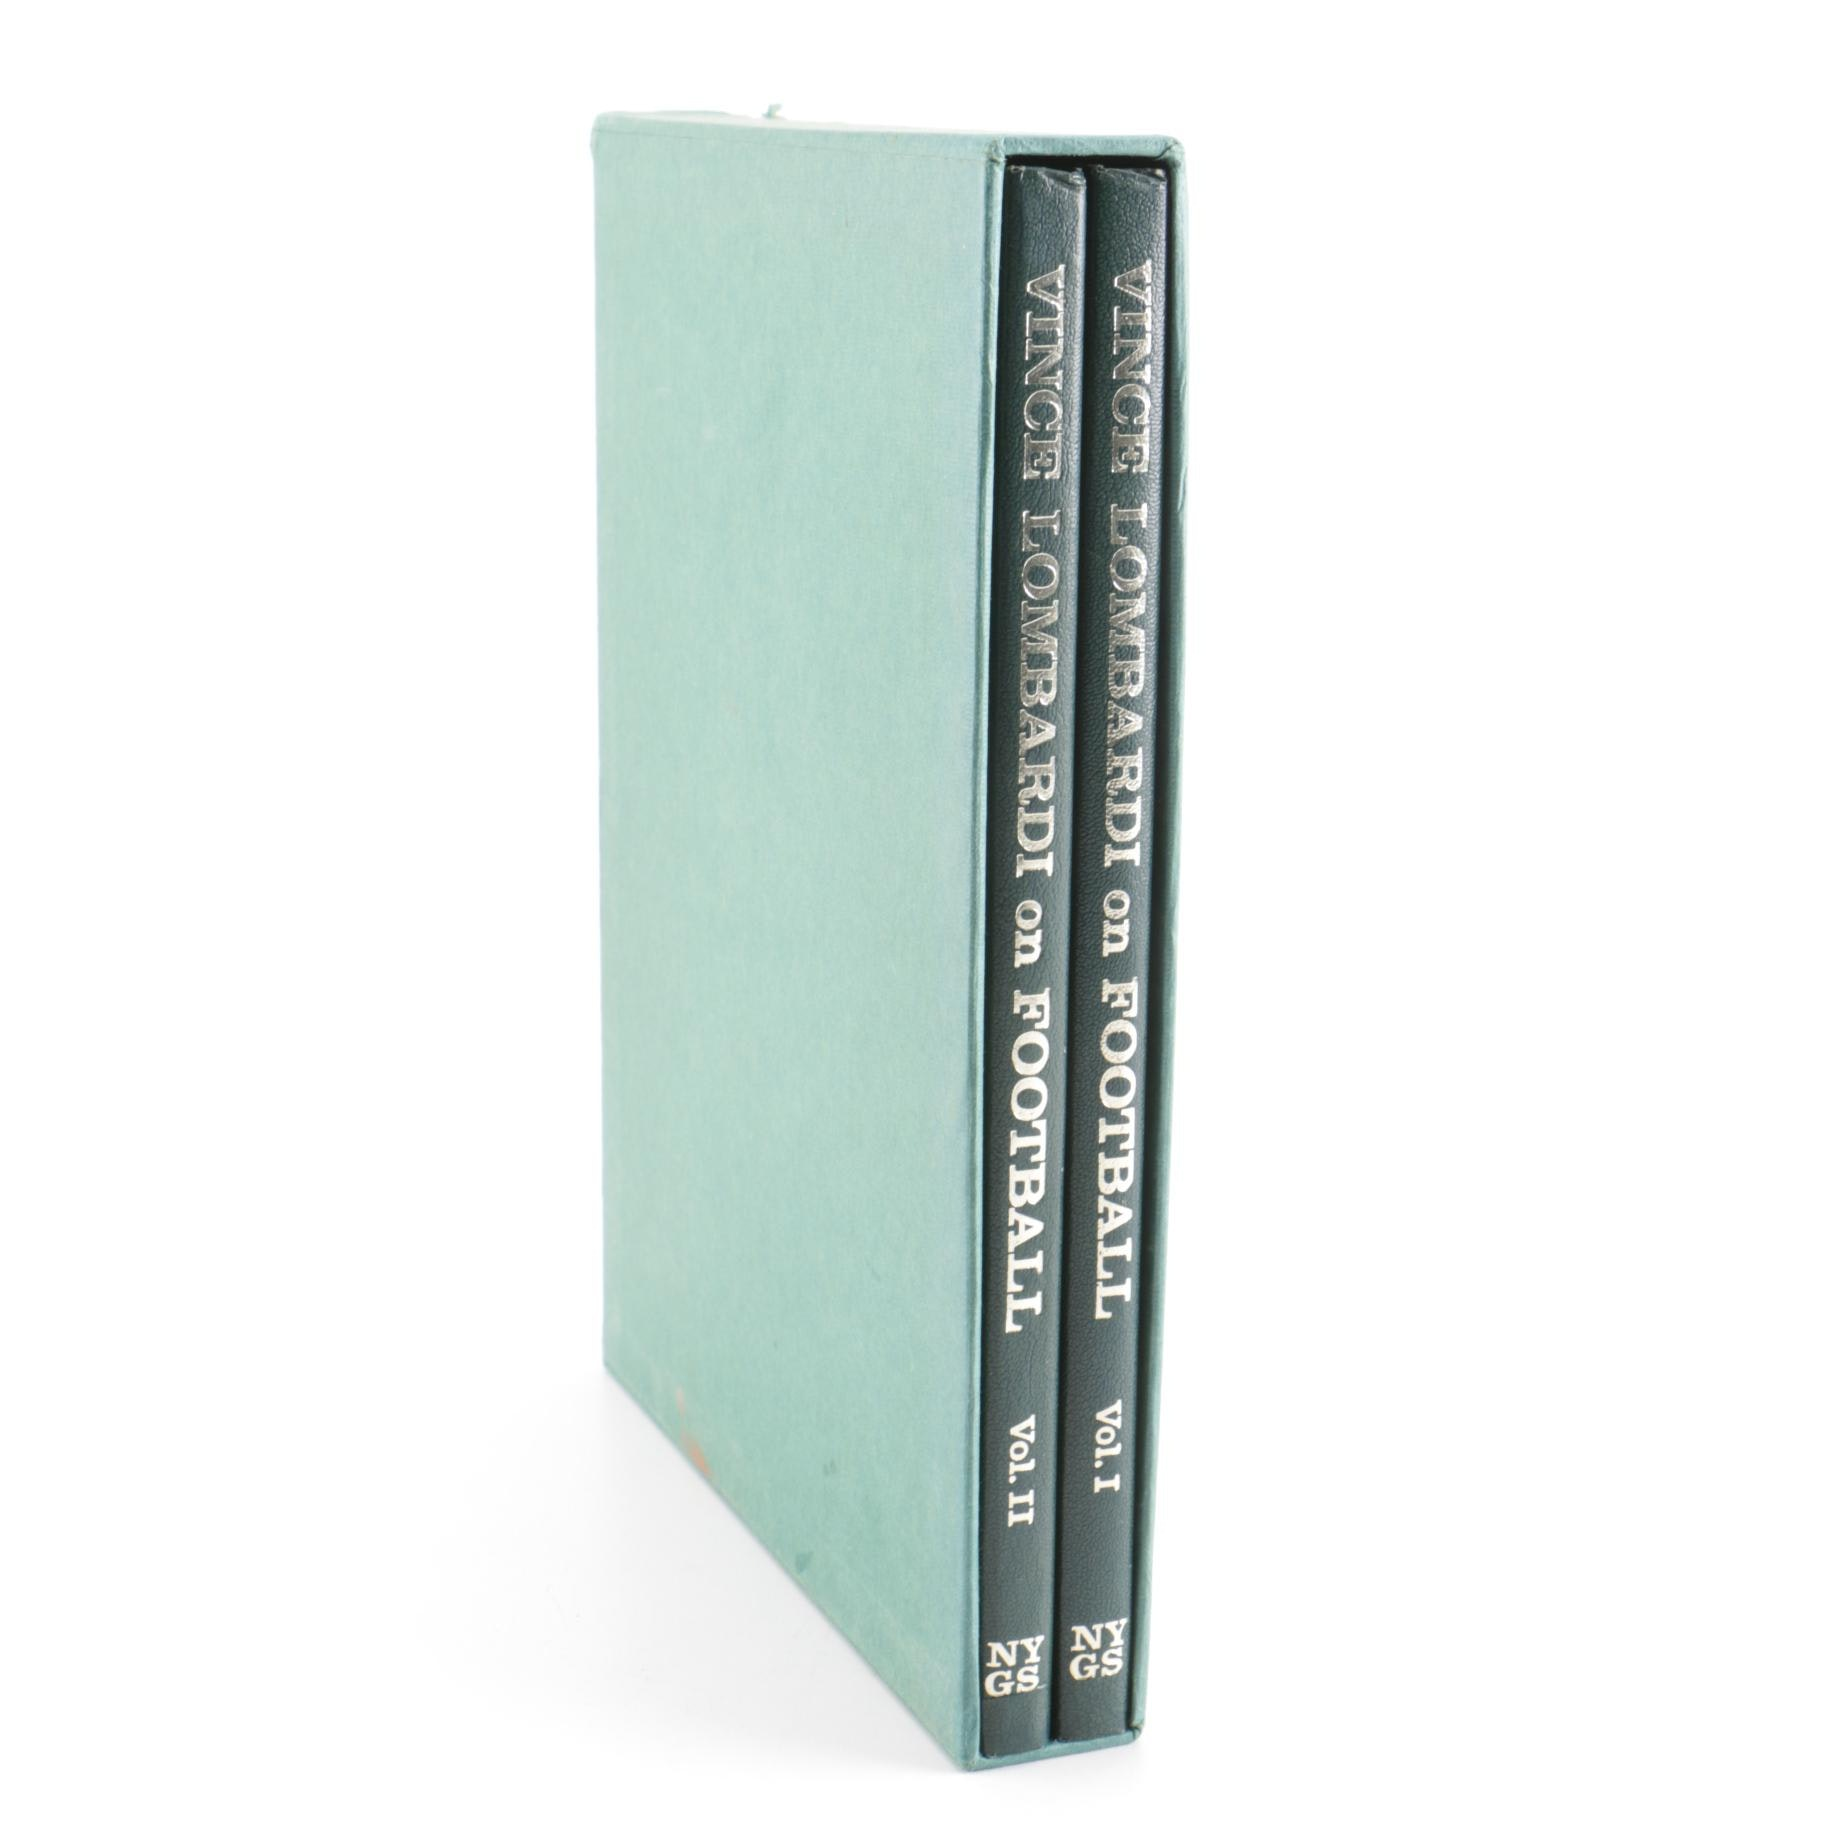 """First Edition """"Vince Lombardi on Football"""" in Two Volumes"""